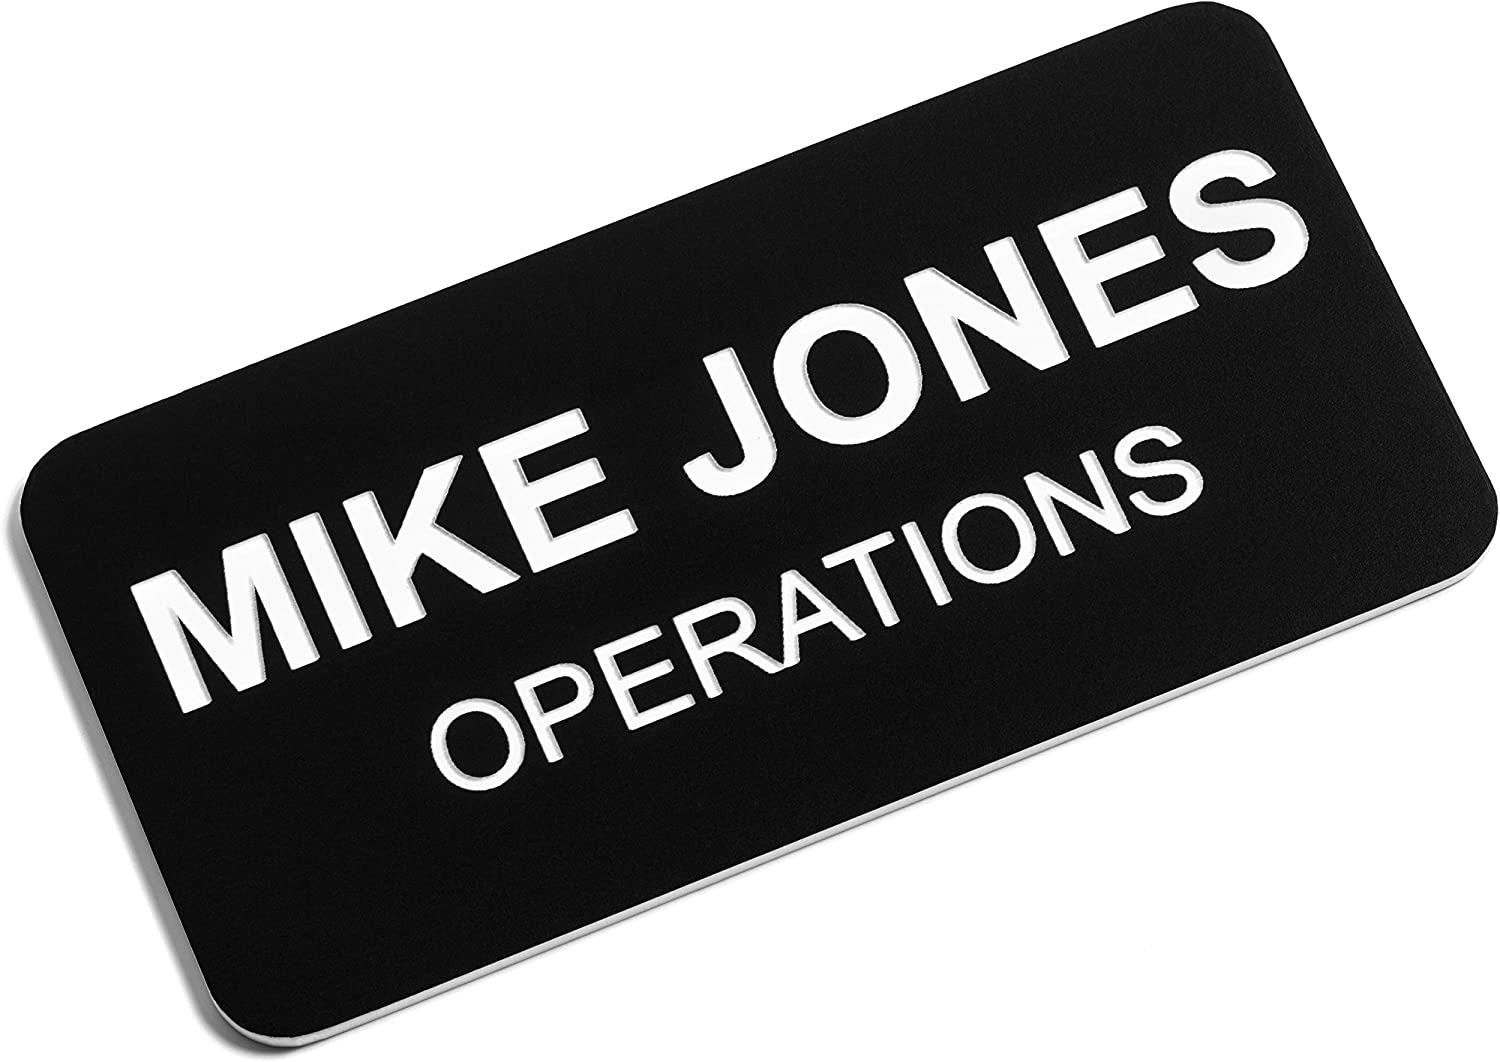 Pin Classic Oval Collection by My Sign Center Personalized Name Tag Choice of Colors Laser Engraved Magnetic or Adhesive Backing 1 X 3